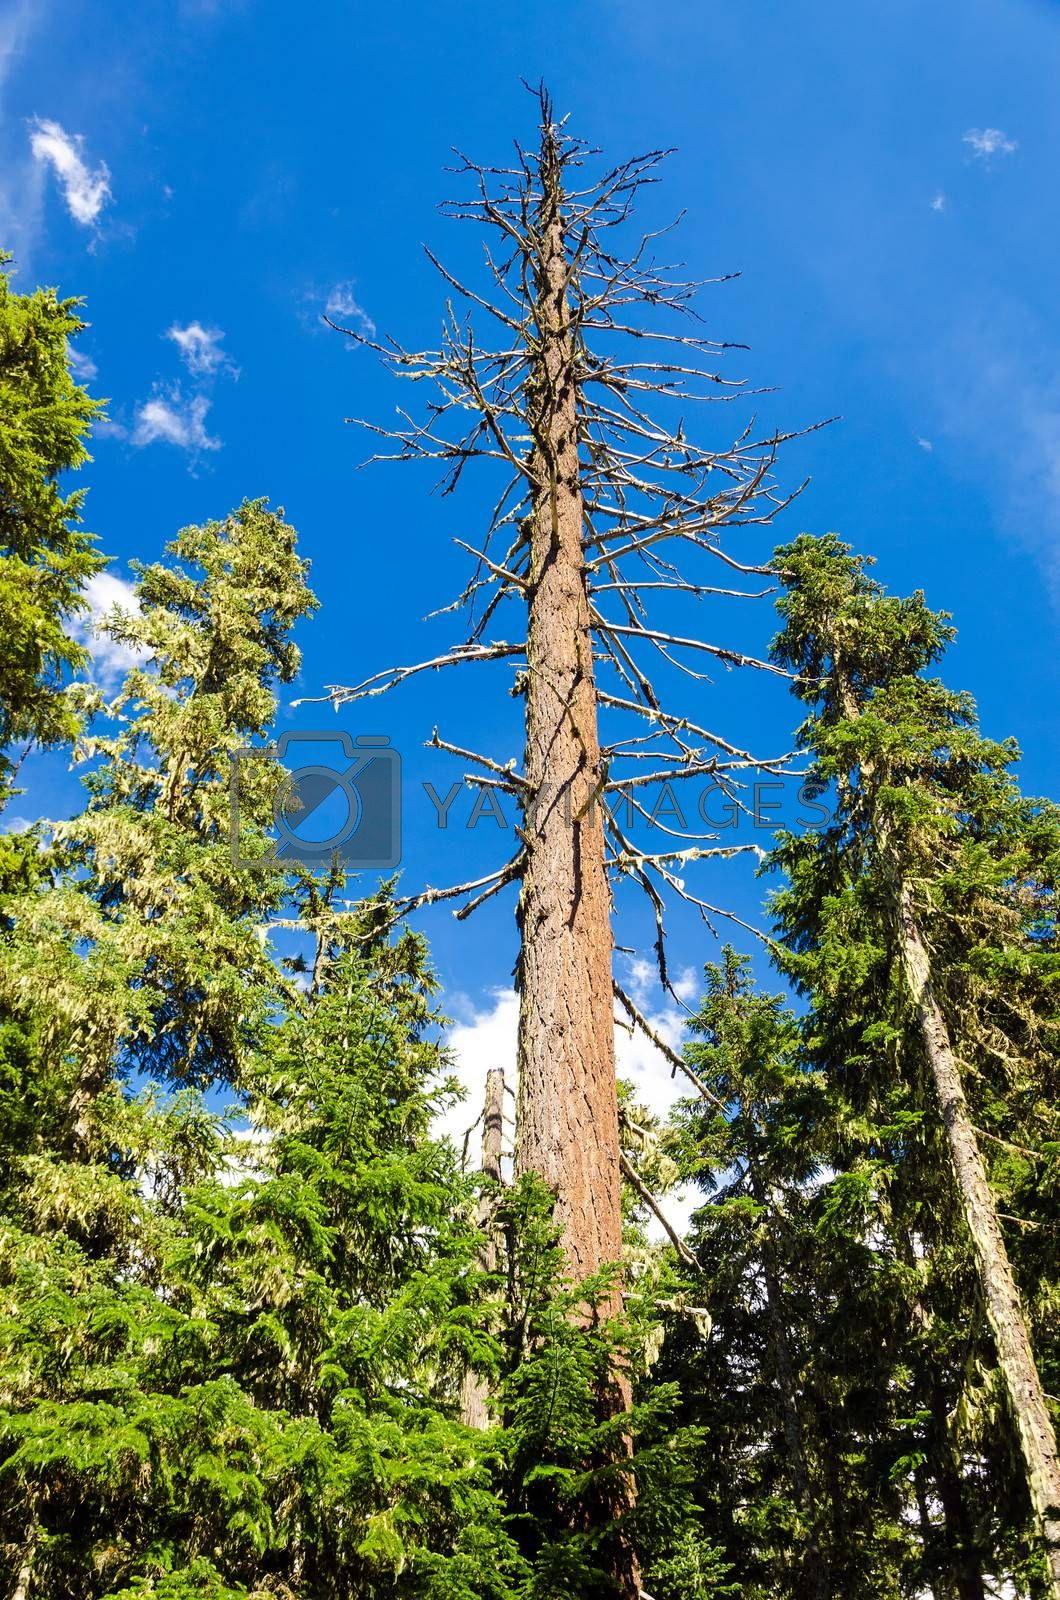 Dead pine tree rising high above living pine trees in Mt. Hood National Forest